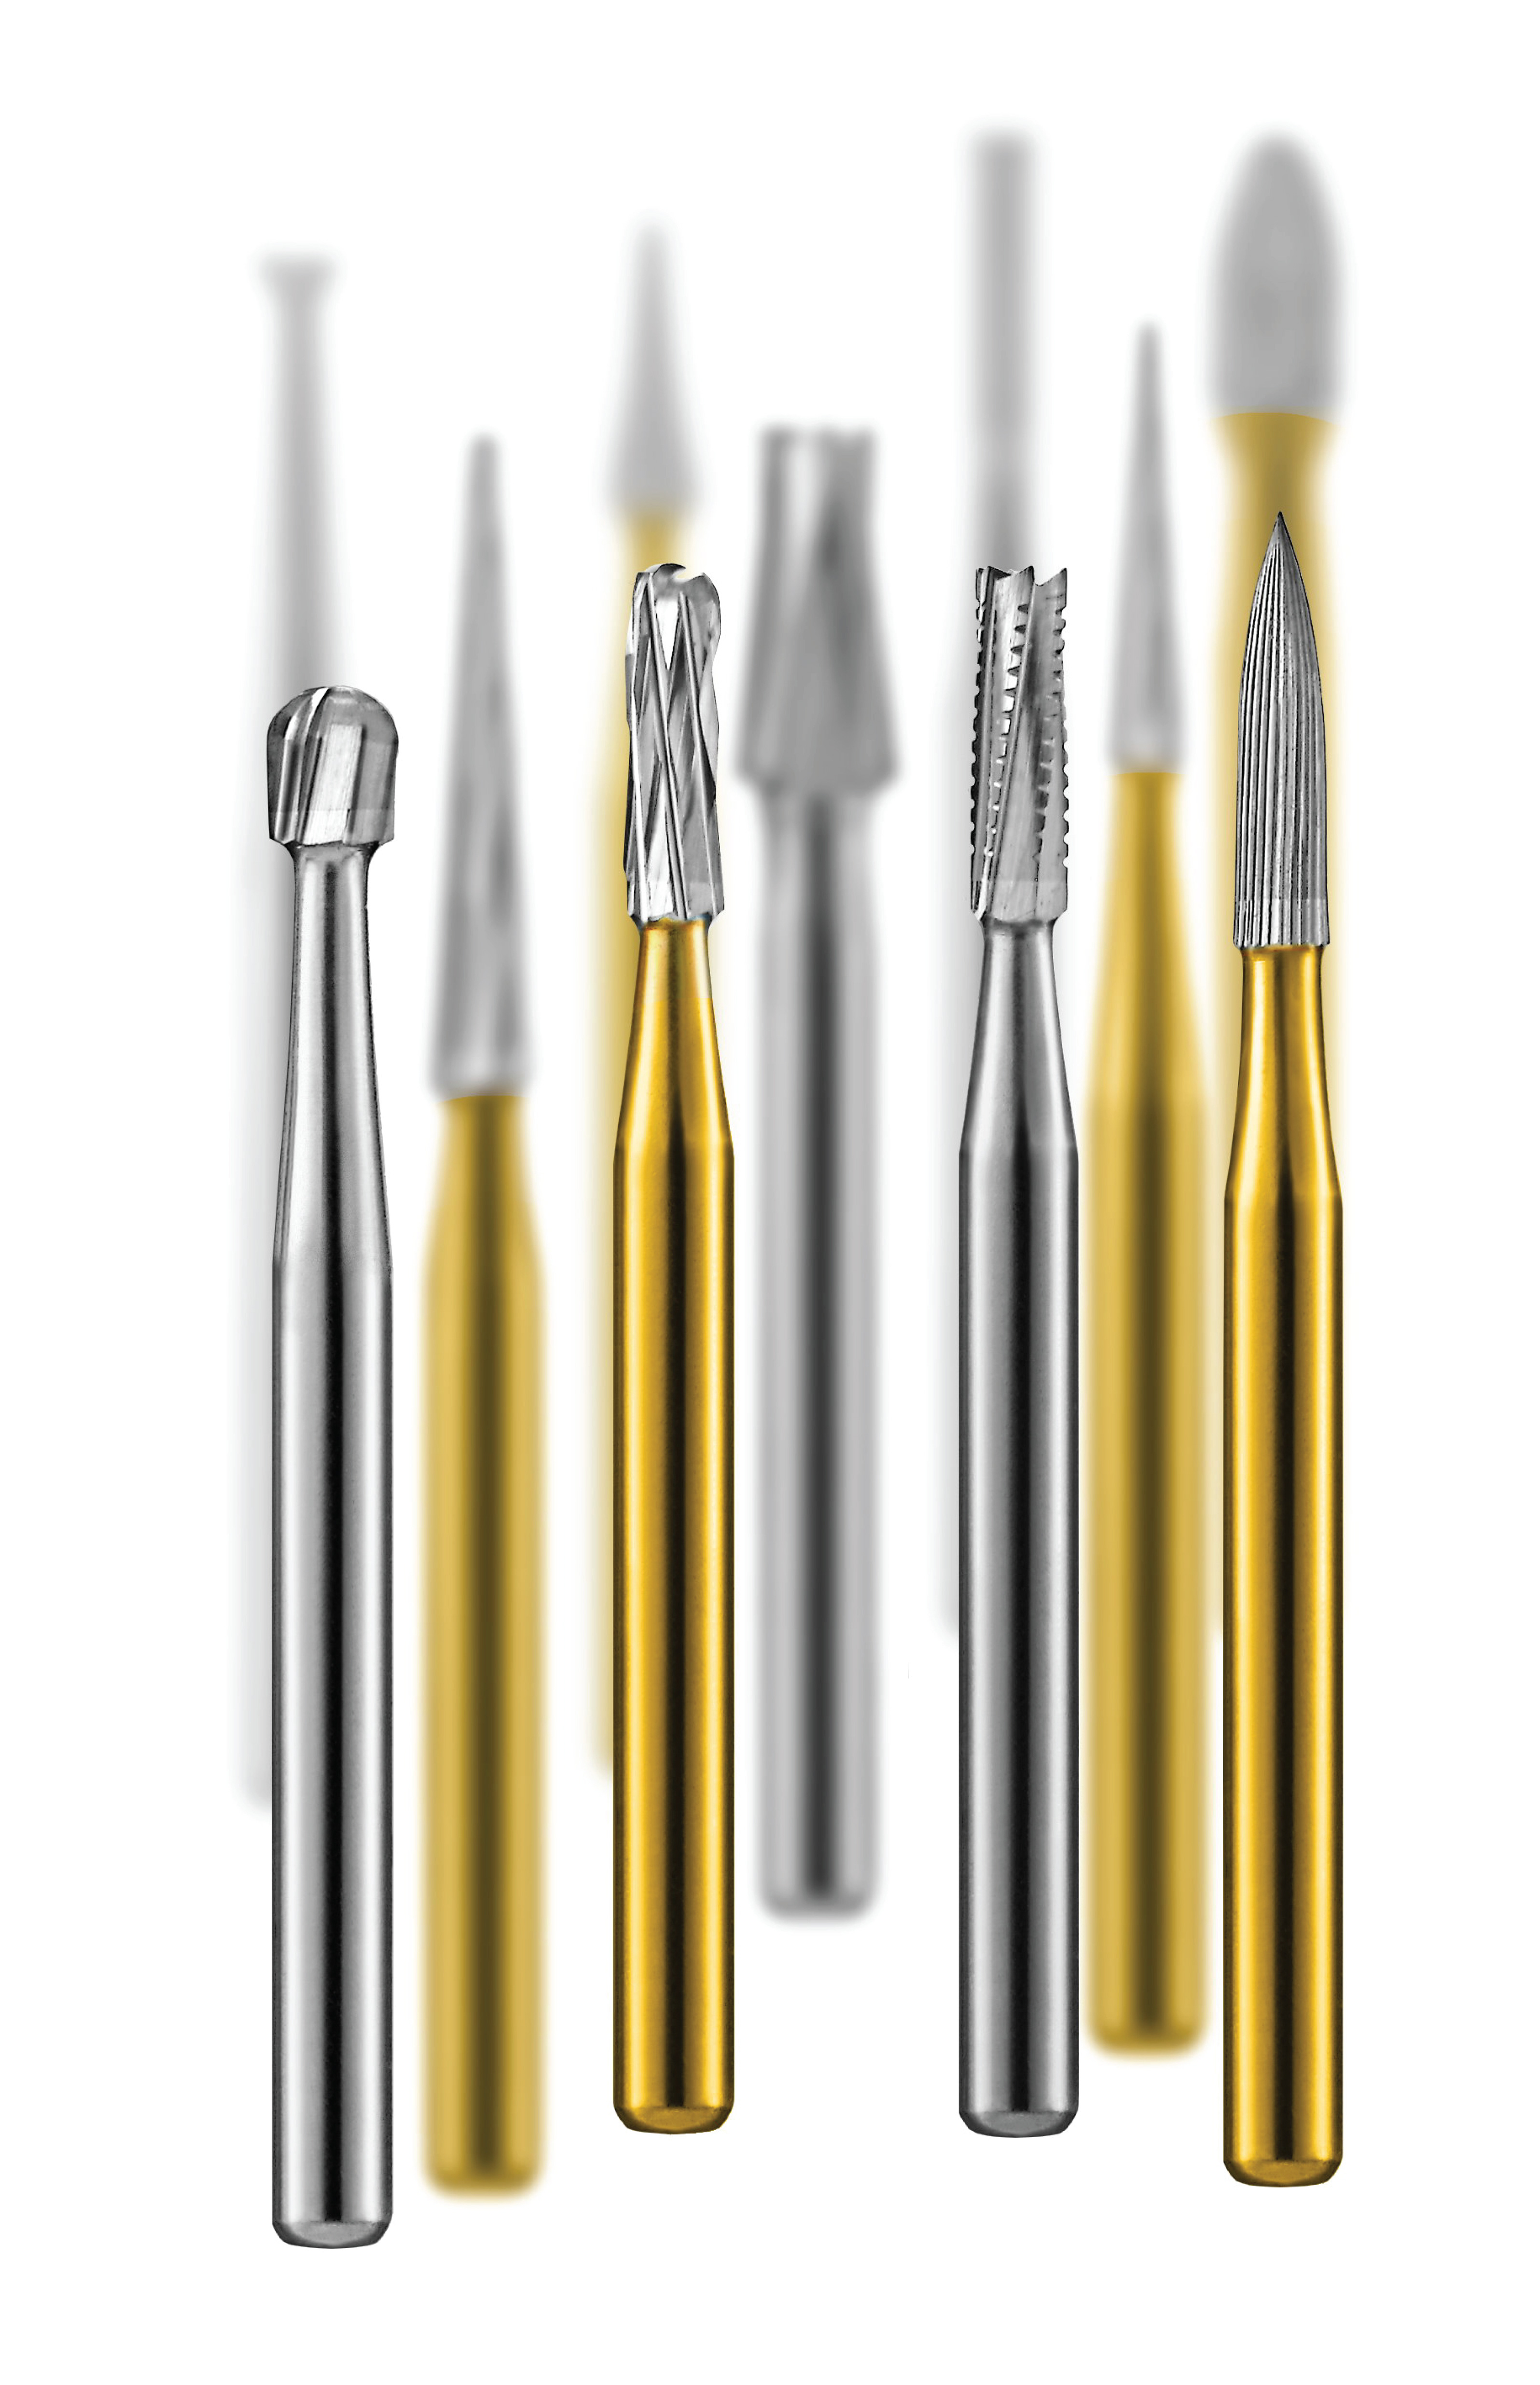 Carbide and Diamond Burs from Pac-Dent